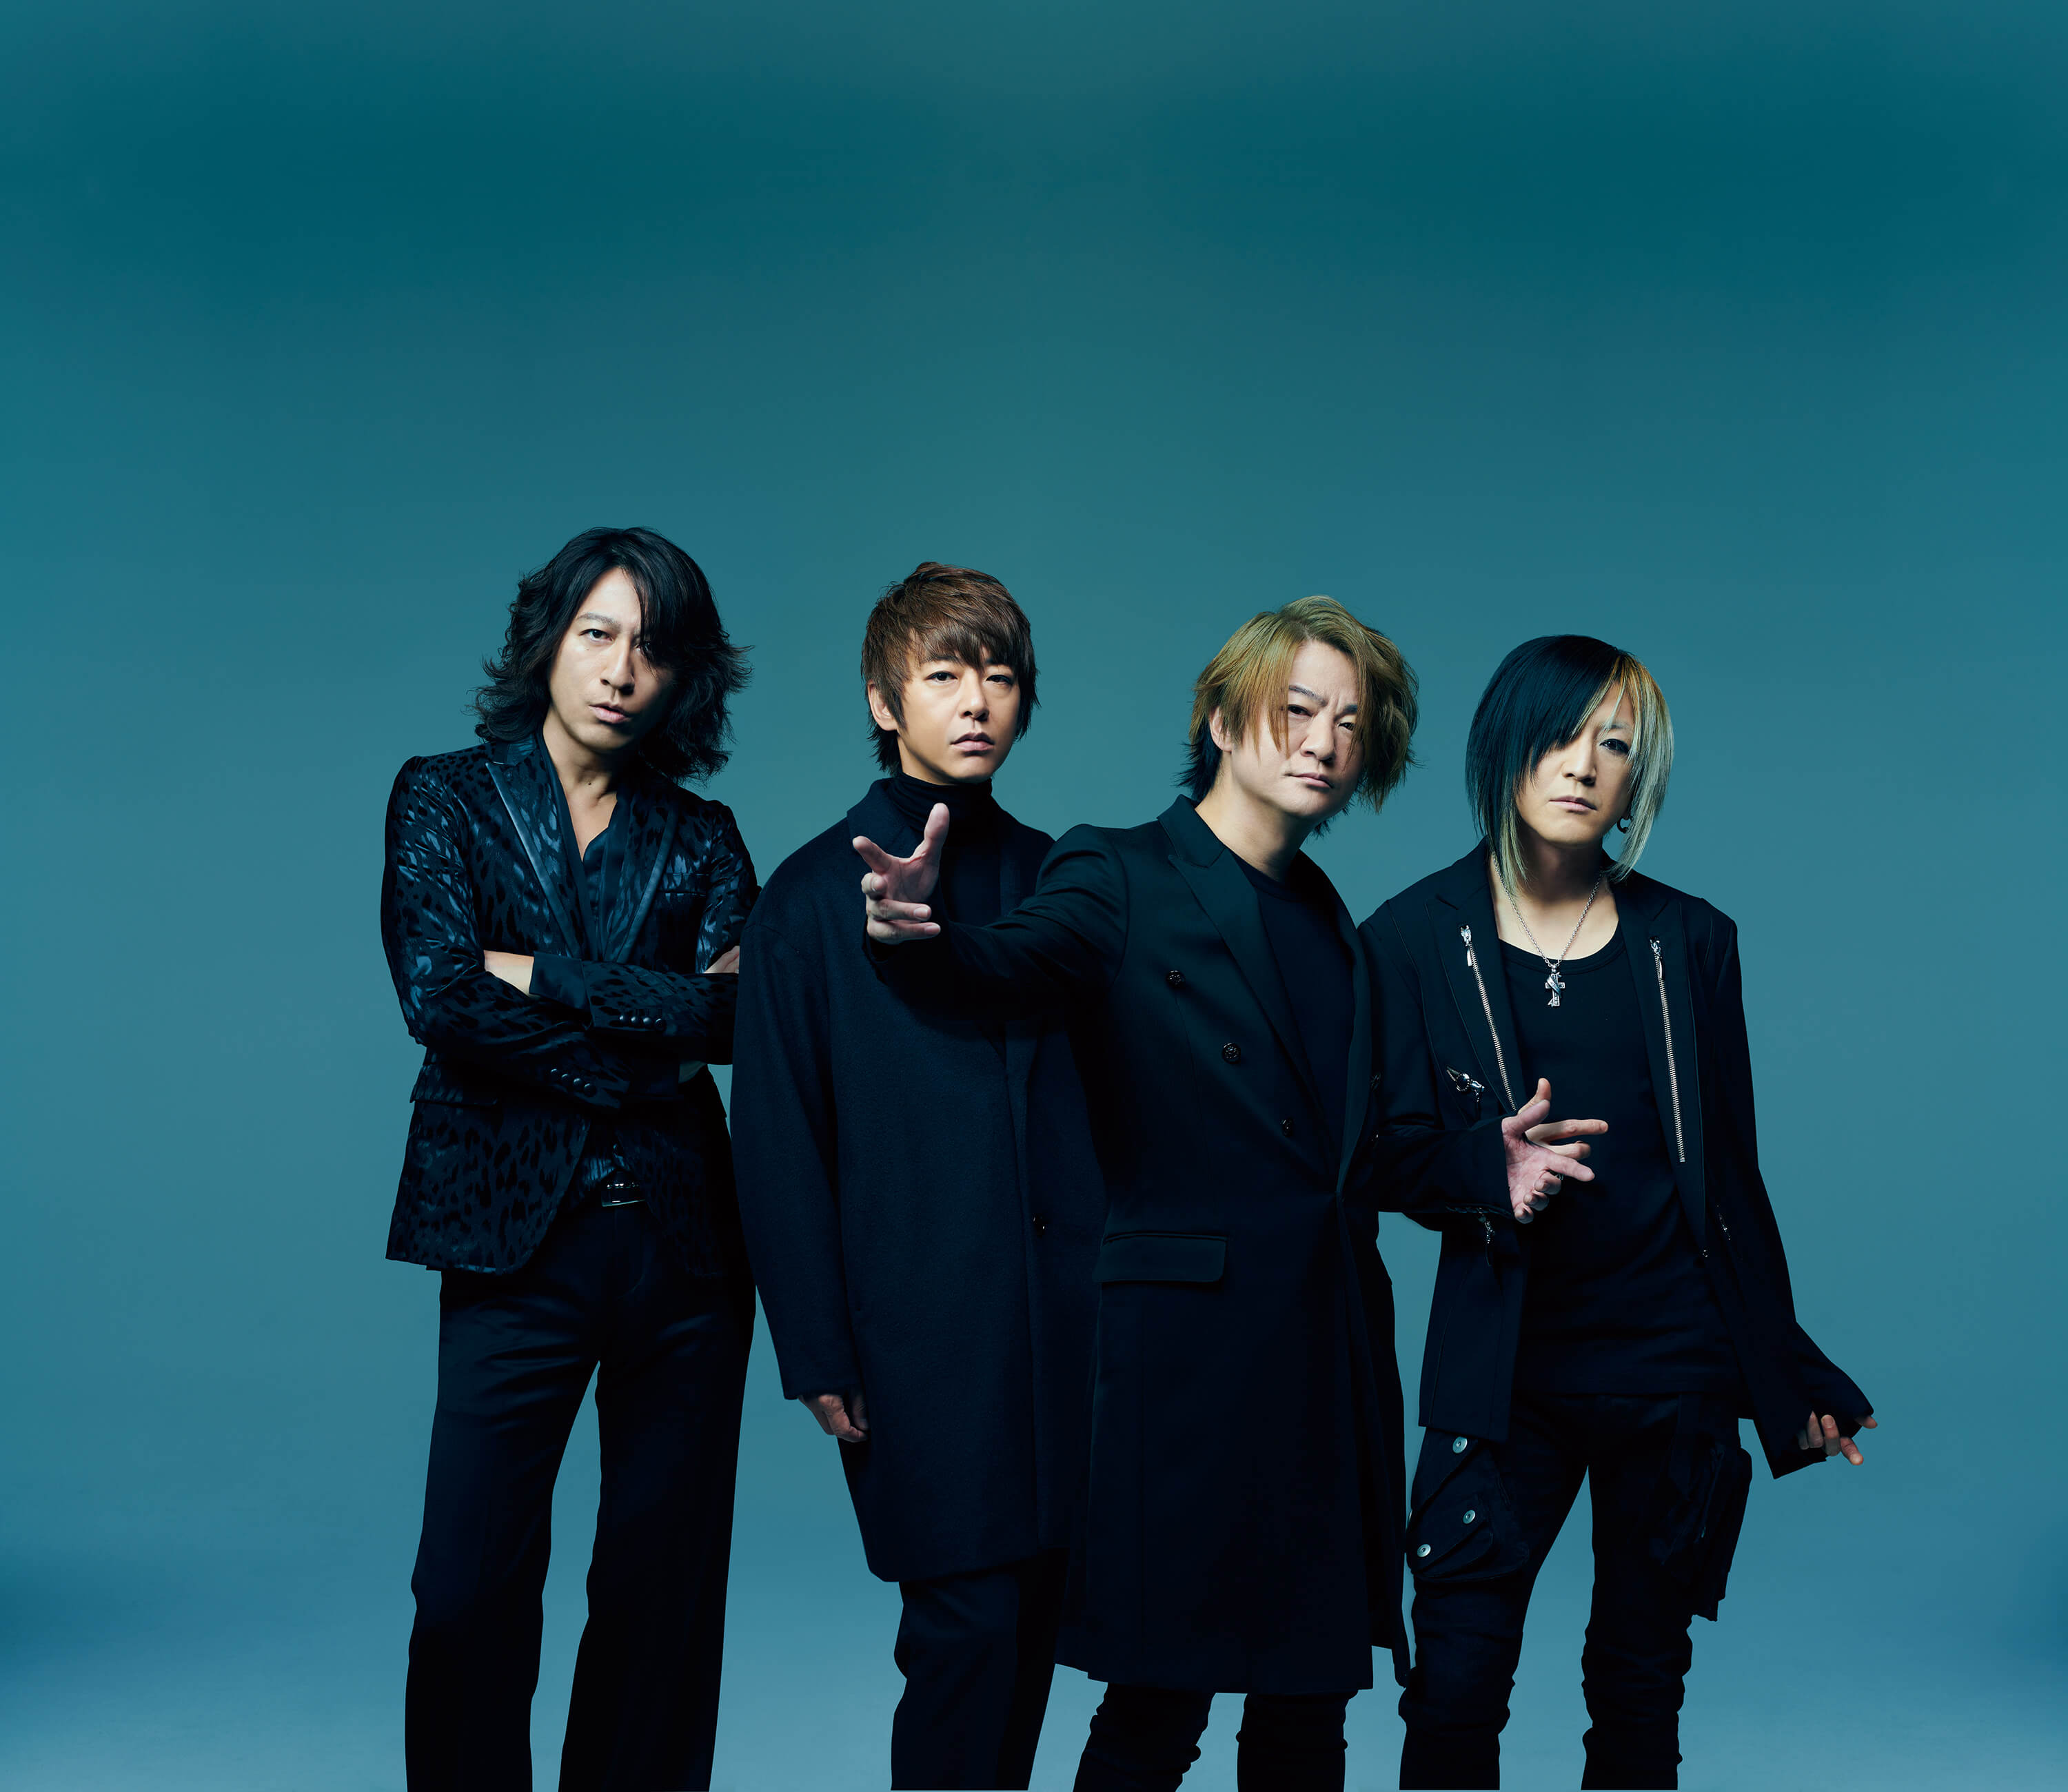 「GLAY Special Live 2020 DEMOCRACY 25th INTO THE WILD Presented by WOWOW」放送決定